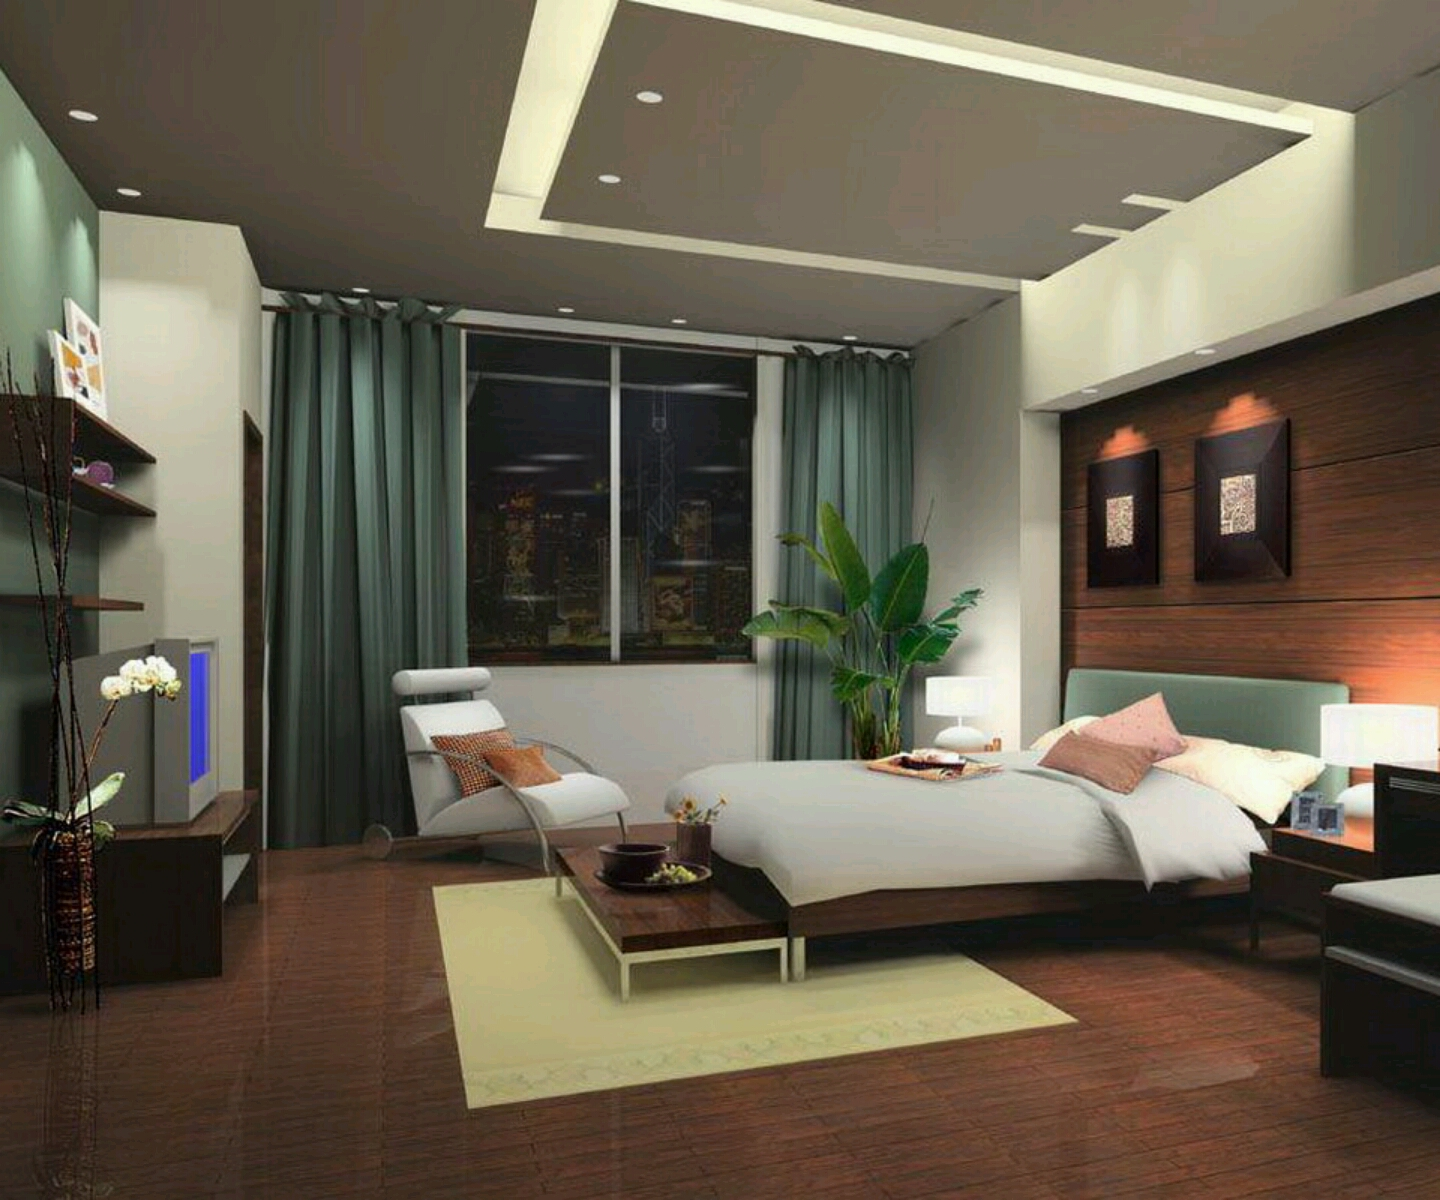 New home designs latest modern bedrooms designs best ideas for Modern room designs